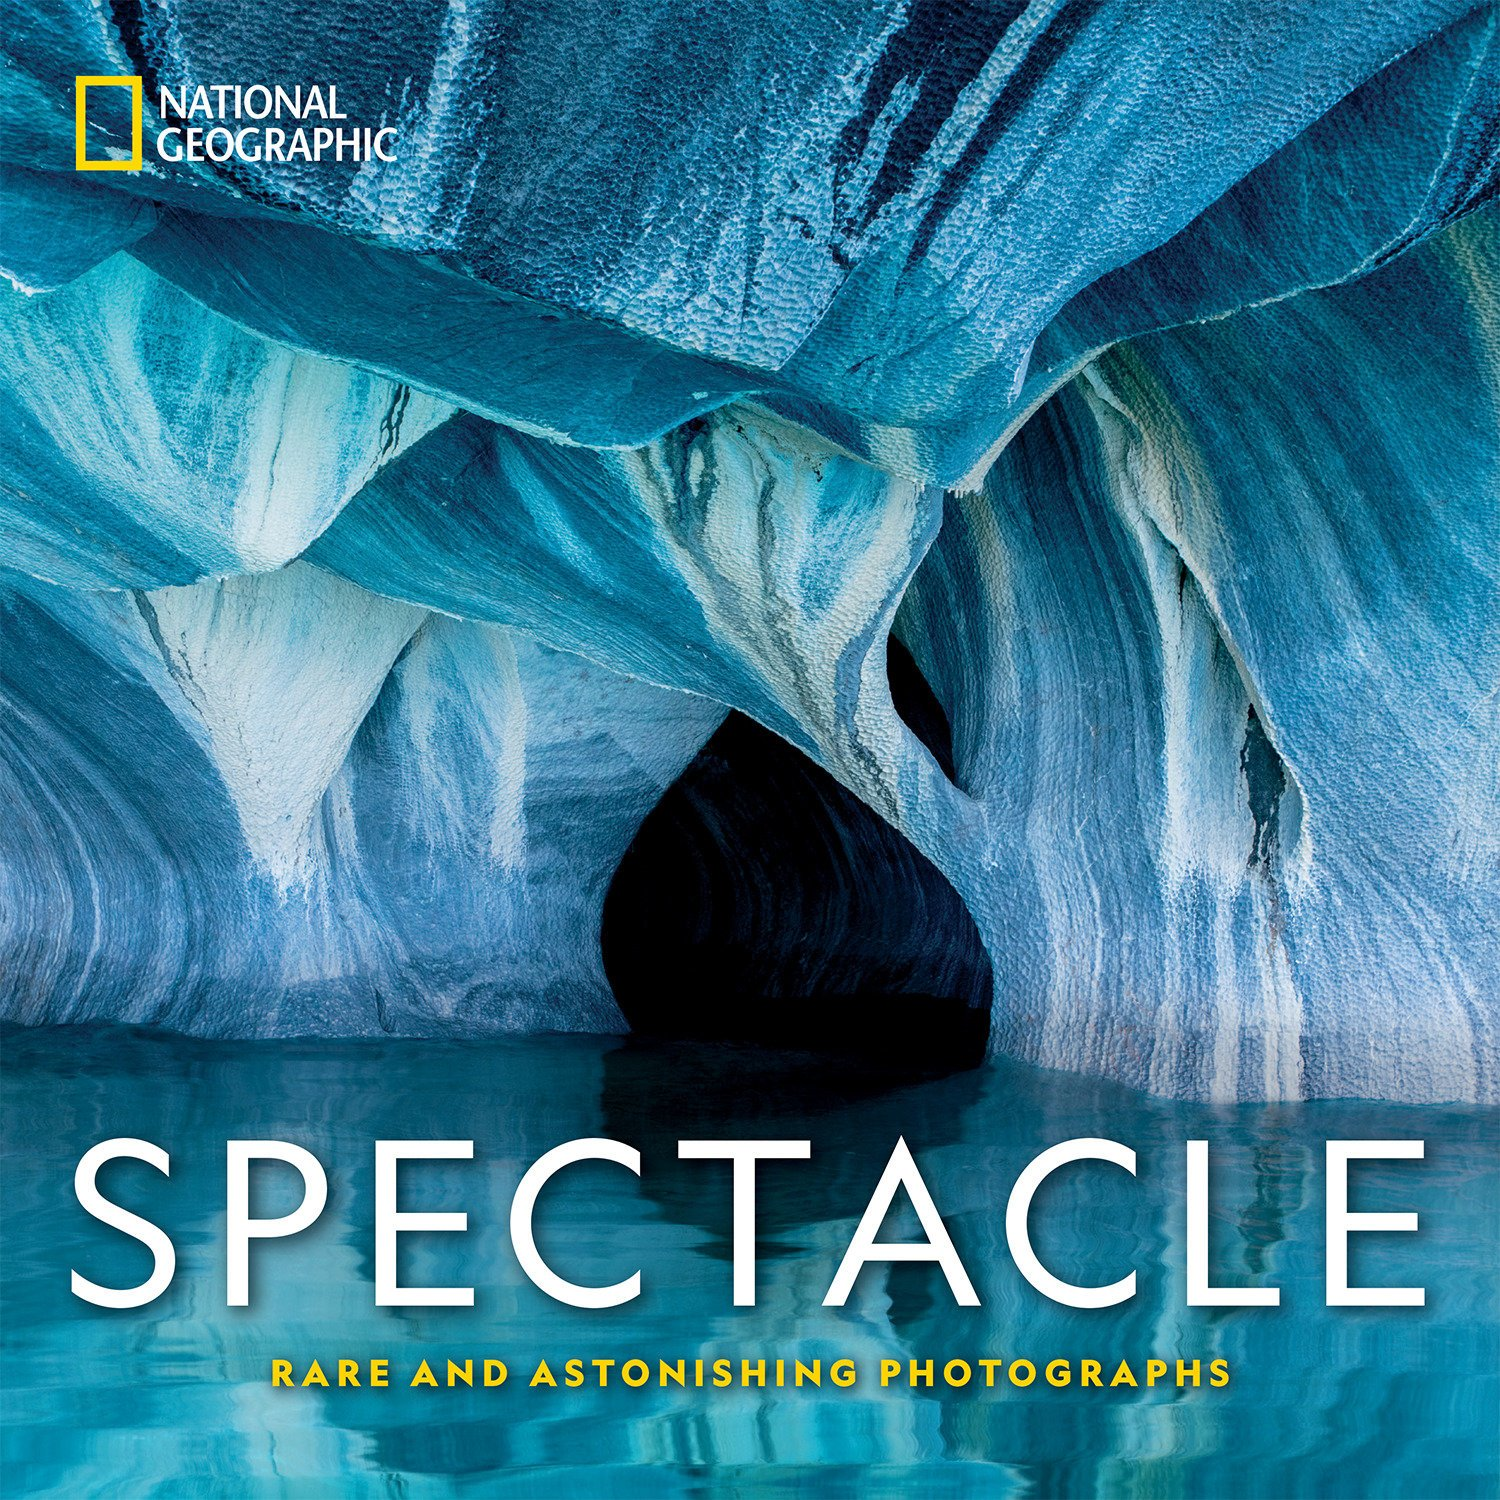 National Geographic Spectacle: Rare and Astonishing Photographs